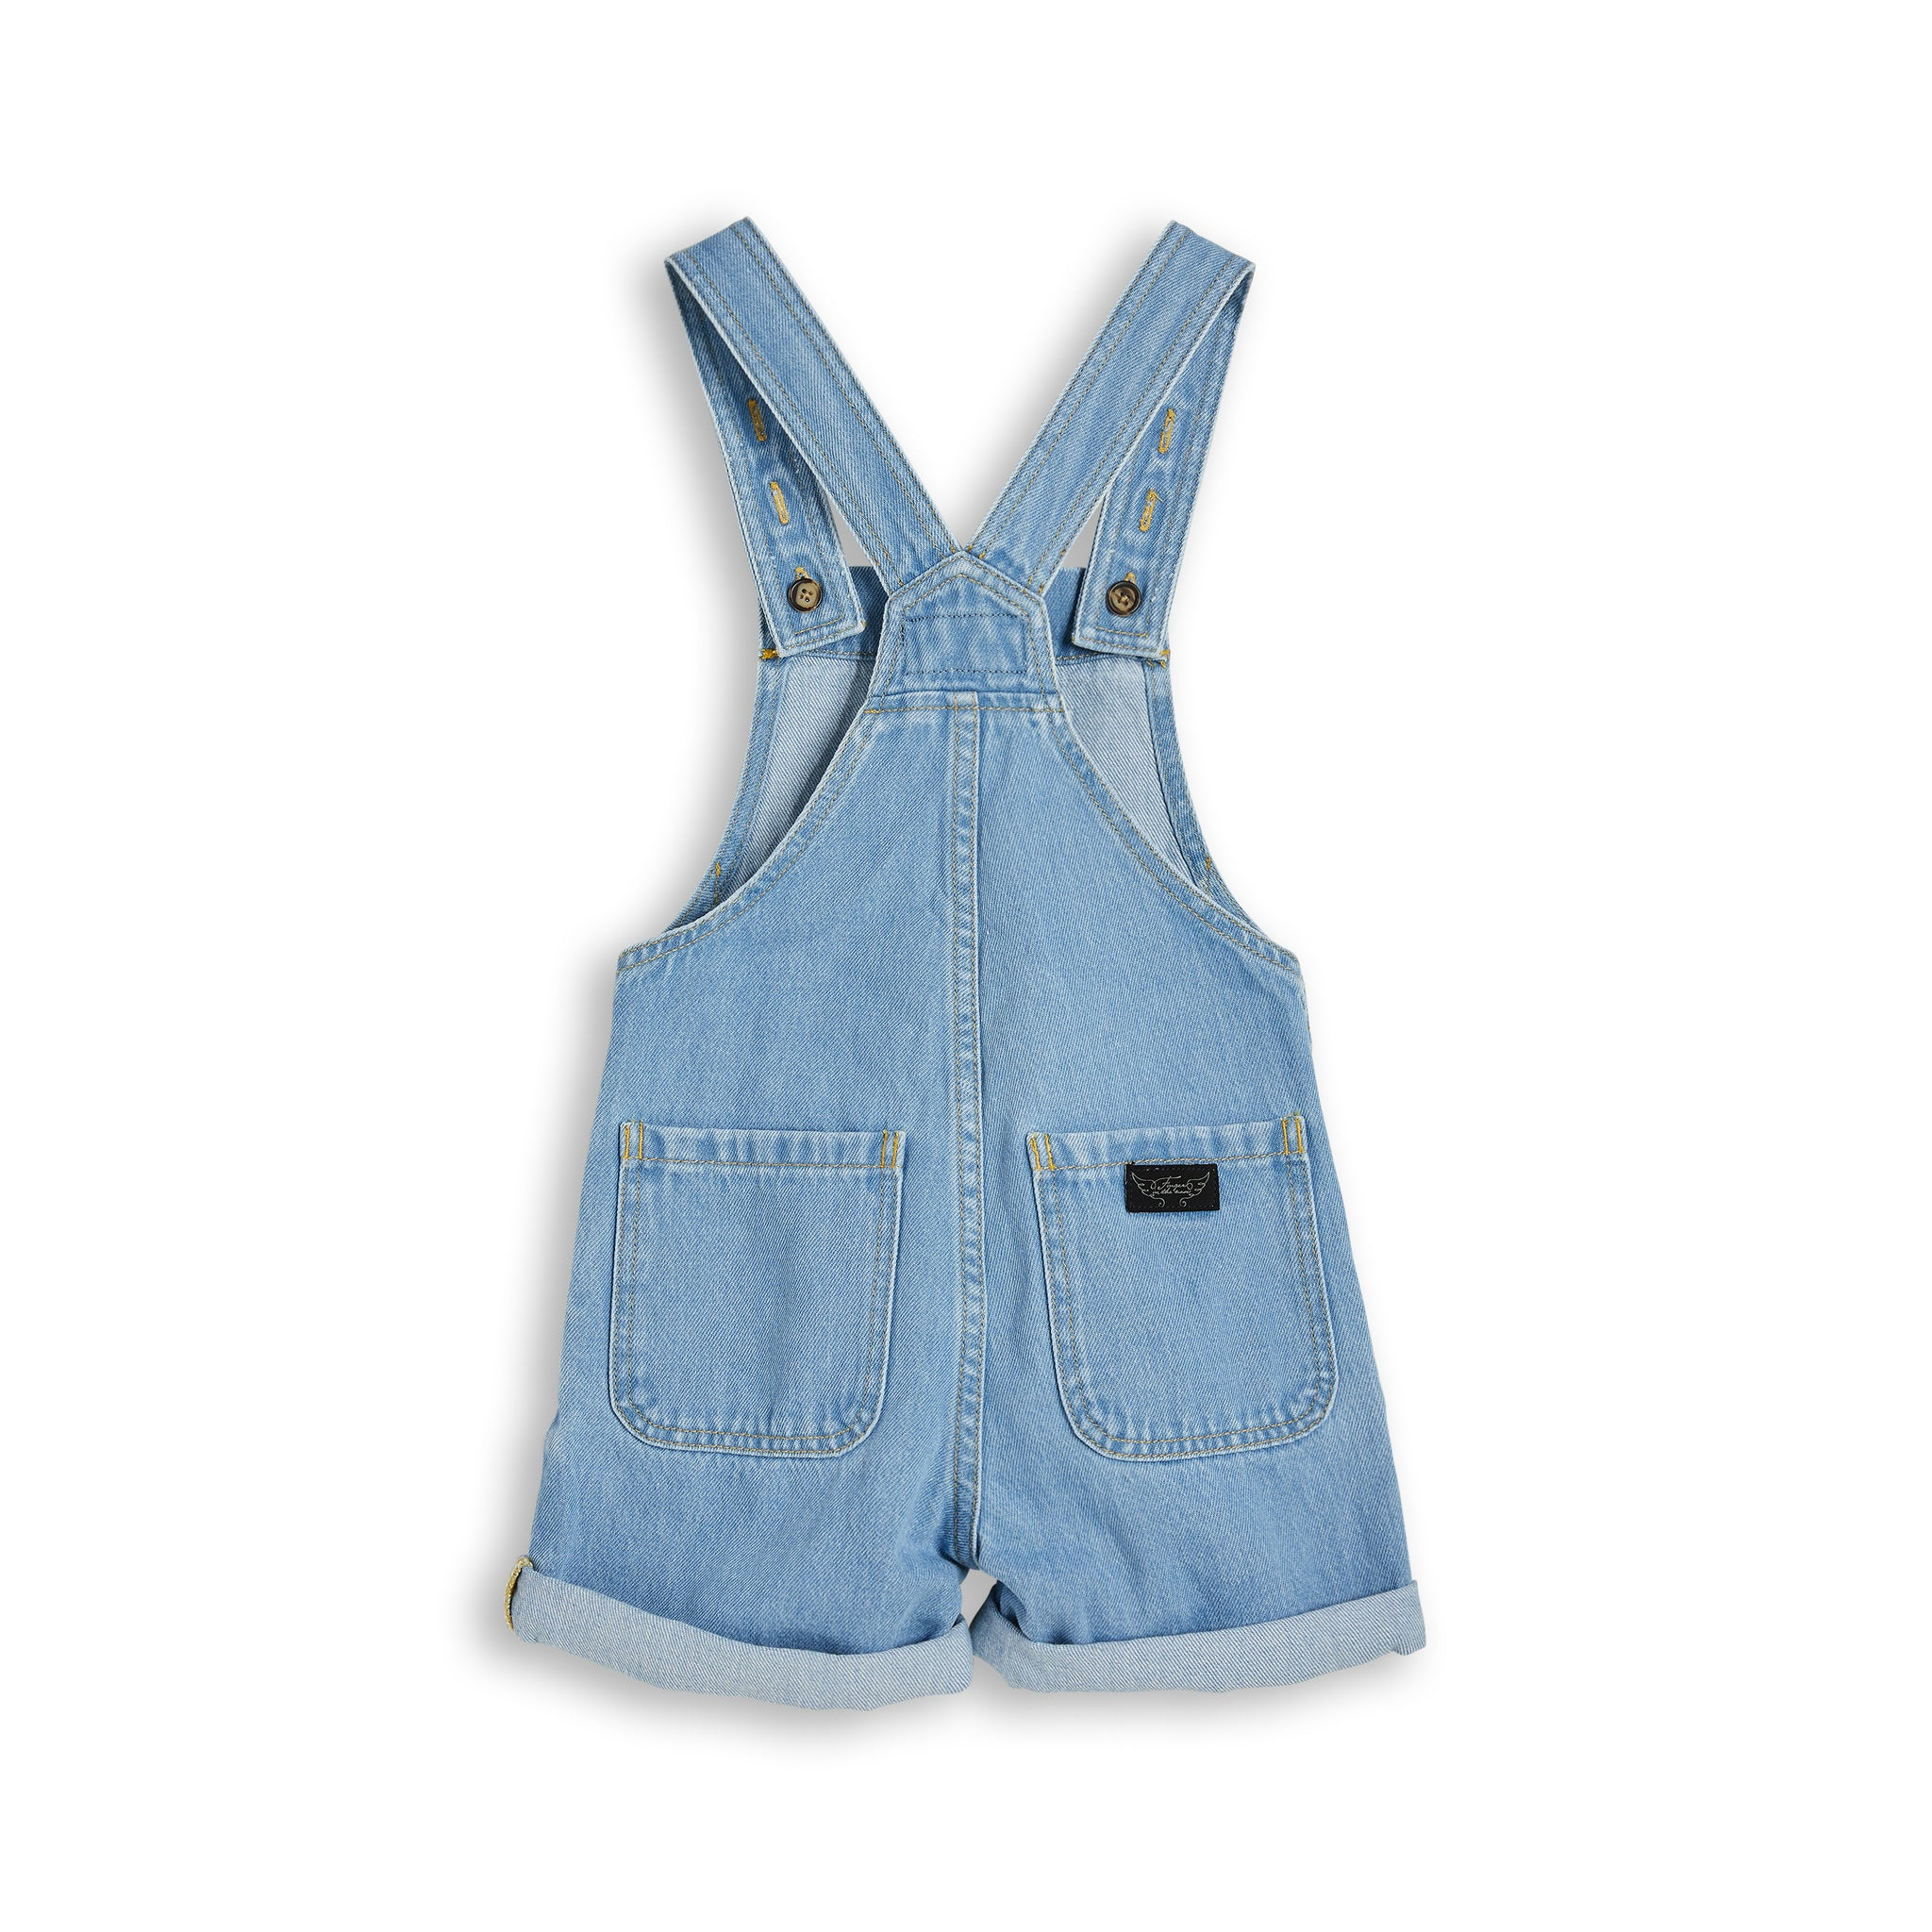 PHOEBE Bleached Blue - Denim Short Overall 2